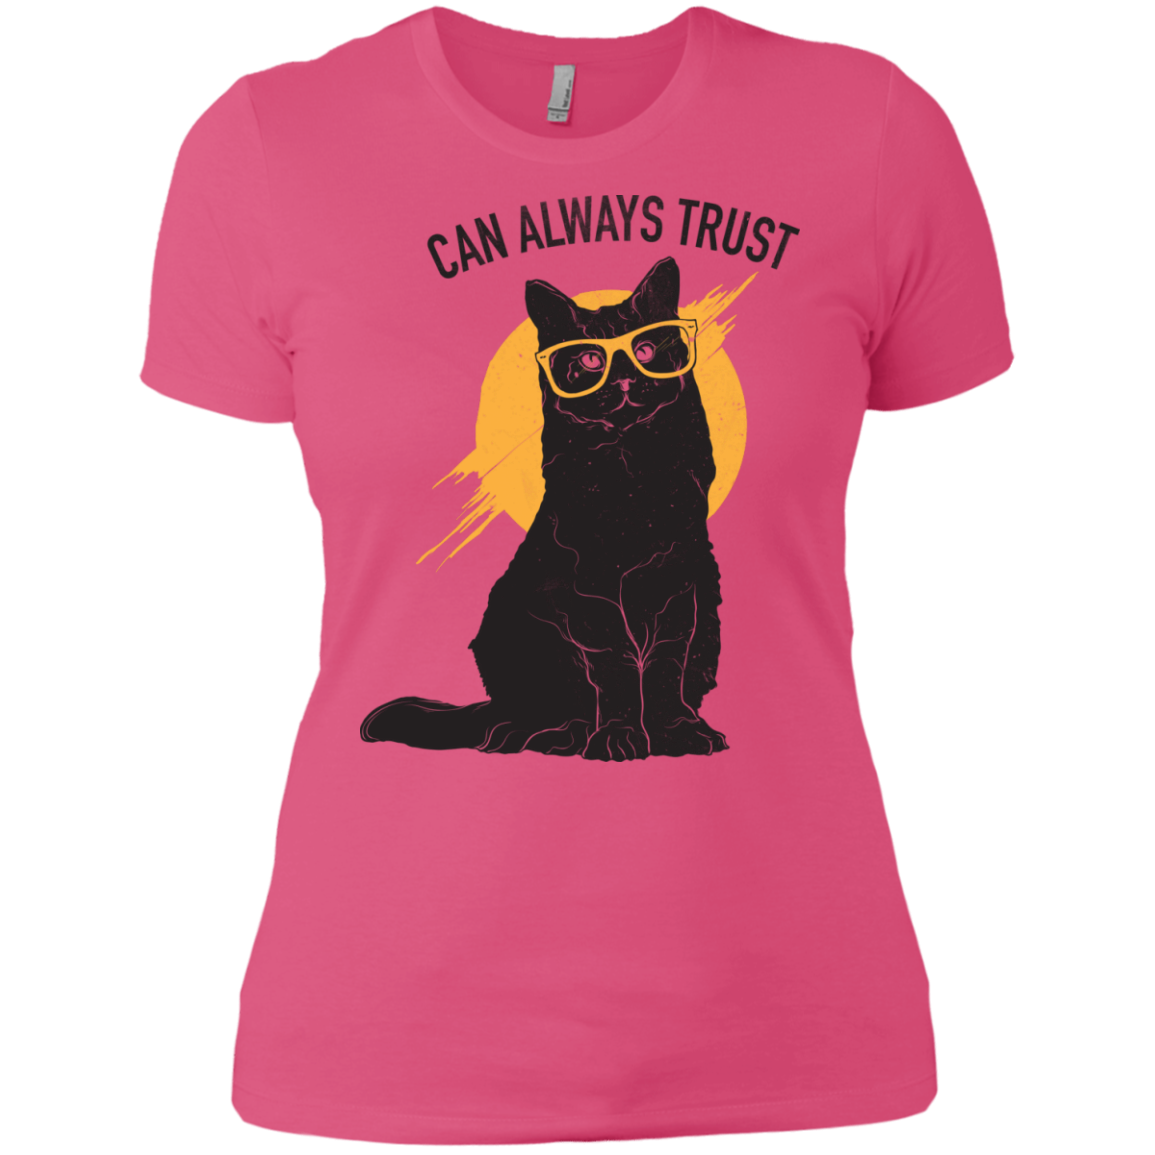 CAN ALWAYS TRUST - The Sun Cat